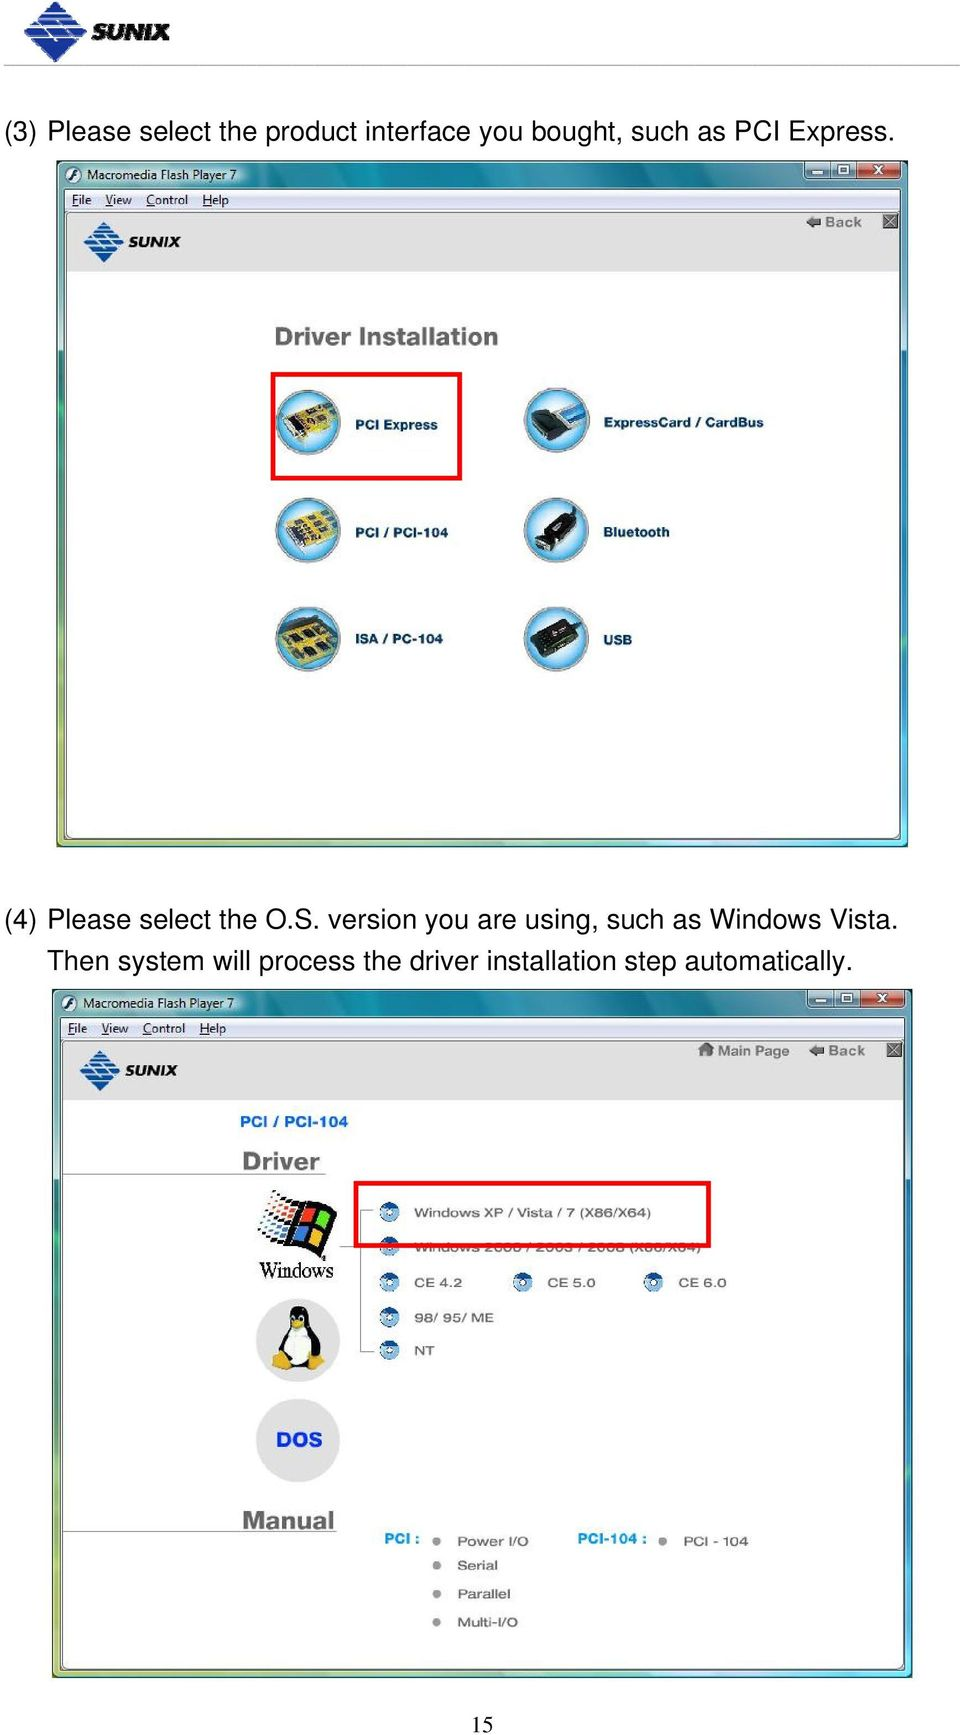 version you are using, such as Windows Vista.